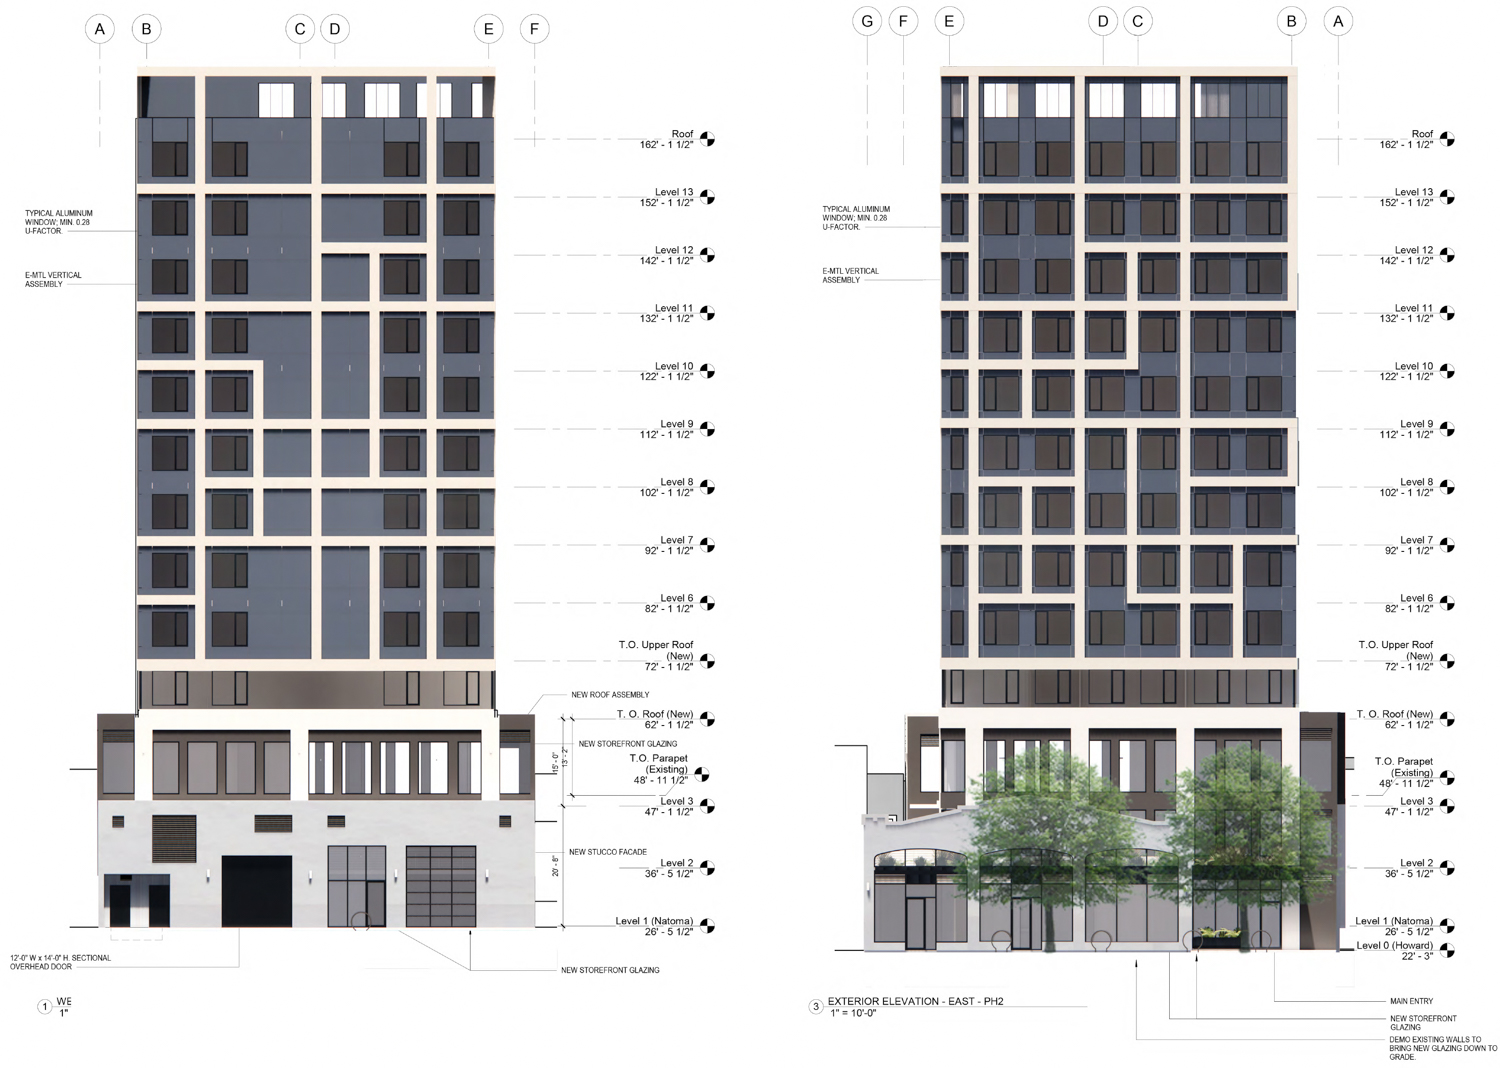 960 Howard Street vertical elevation, illustration by oWOW